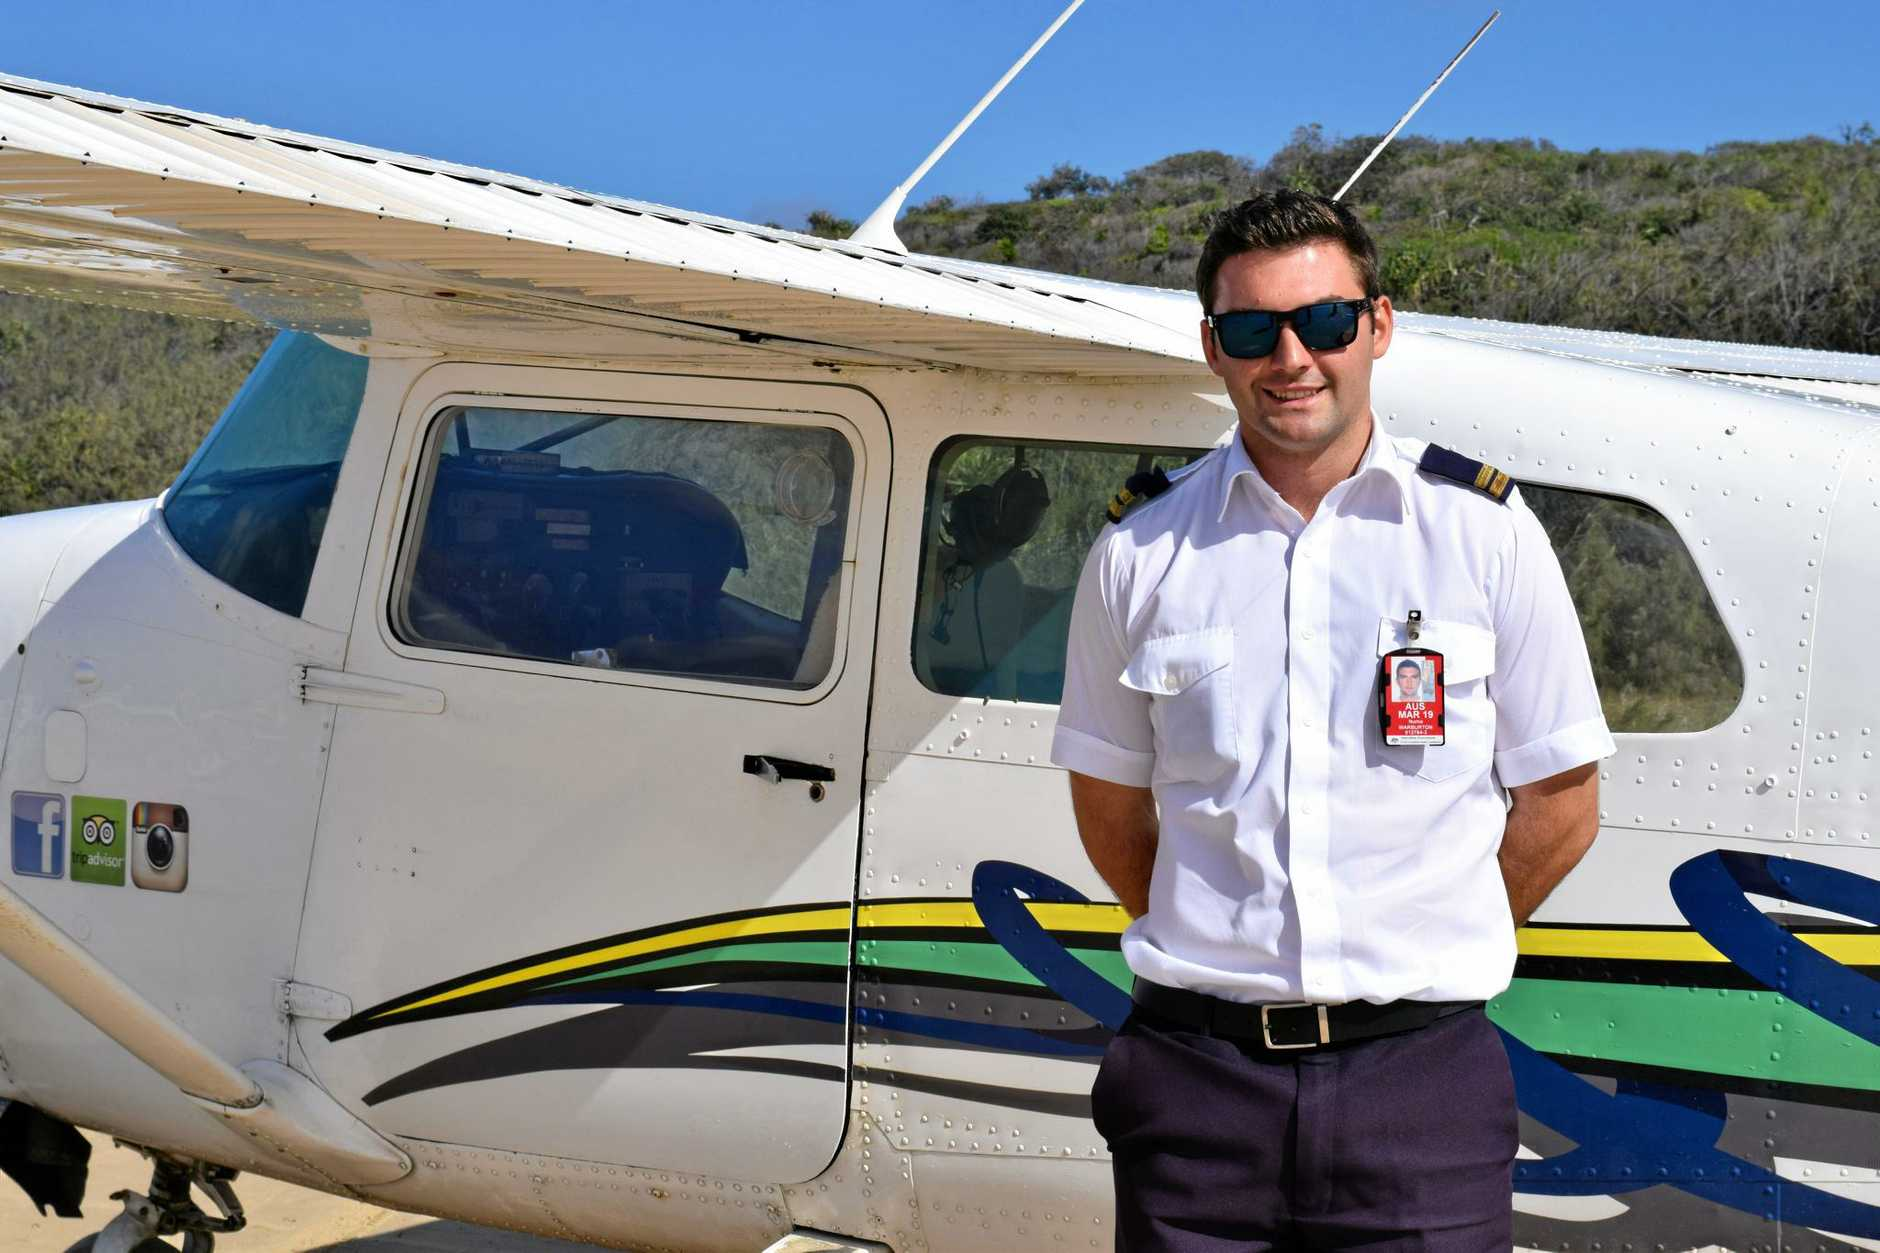 Numa Warburton is one of the pilots who takes tourists on thrilling, scenic flights over the island. Many passengers are lucky enough to spot whales in the right seasons.